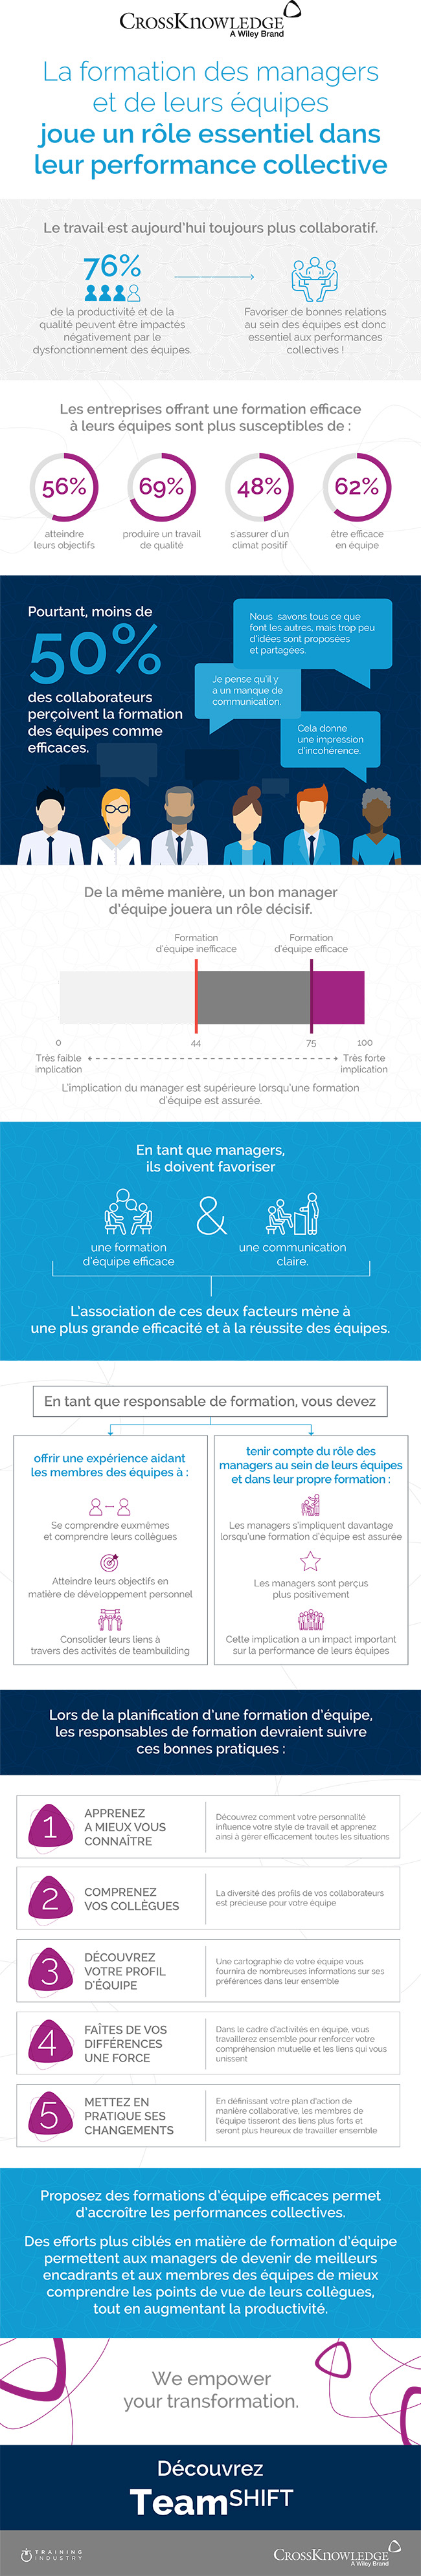 Formation d'équipe - infographie Crossknowledge - RHEXIS